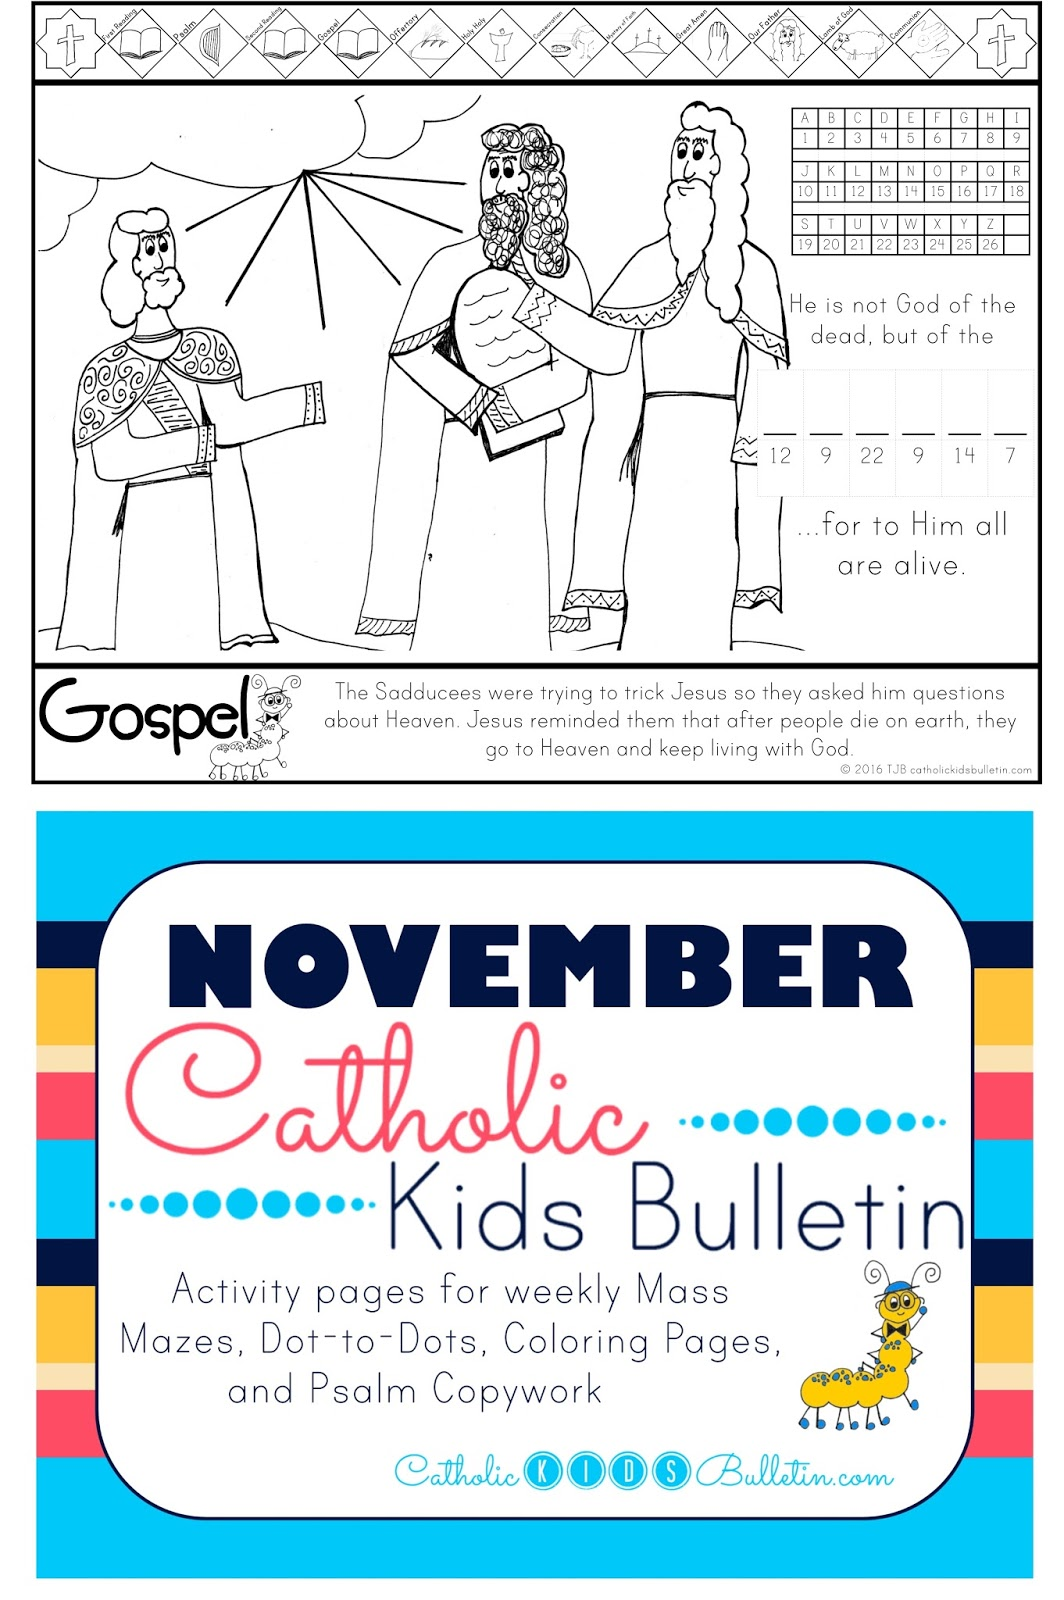 Catholic Kids Bulletin: Weekly Mass Prep for Kids! Luke 20:27-38